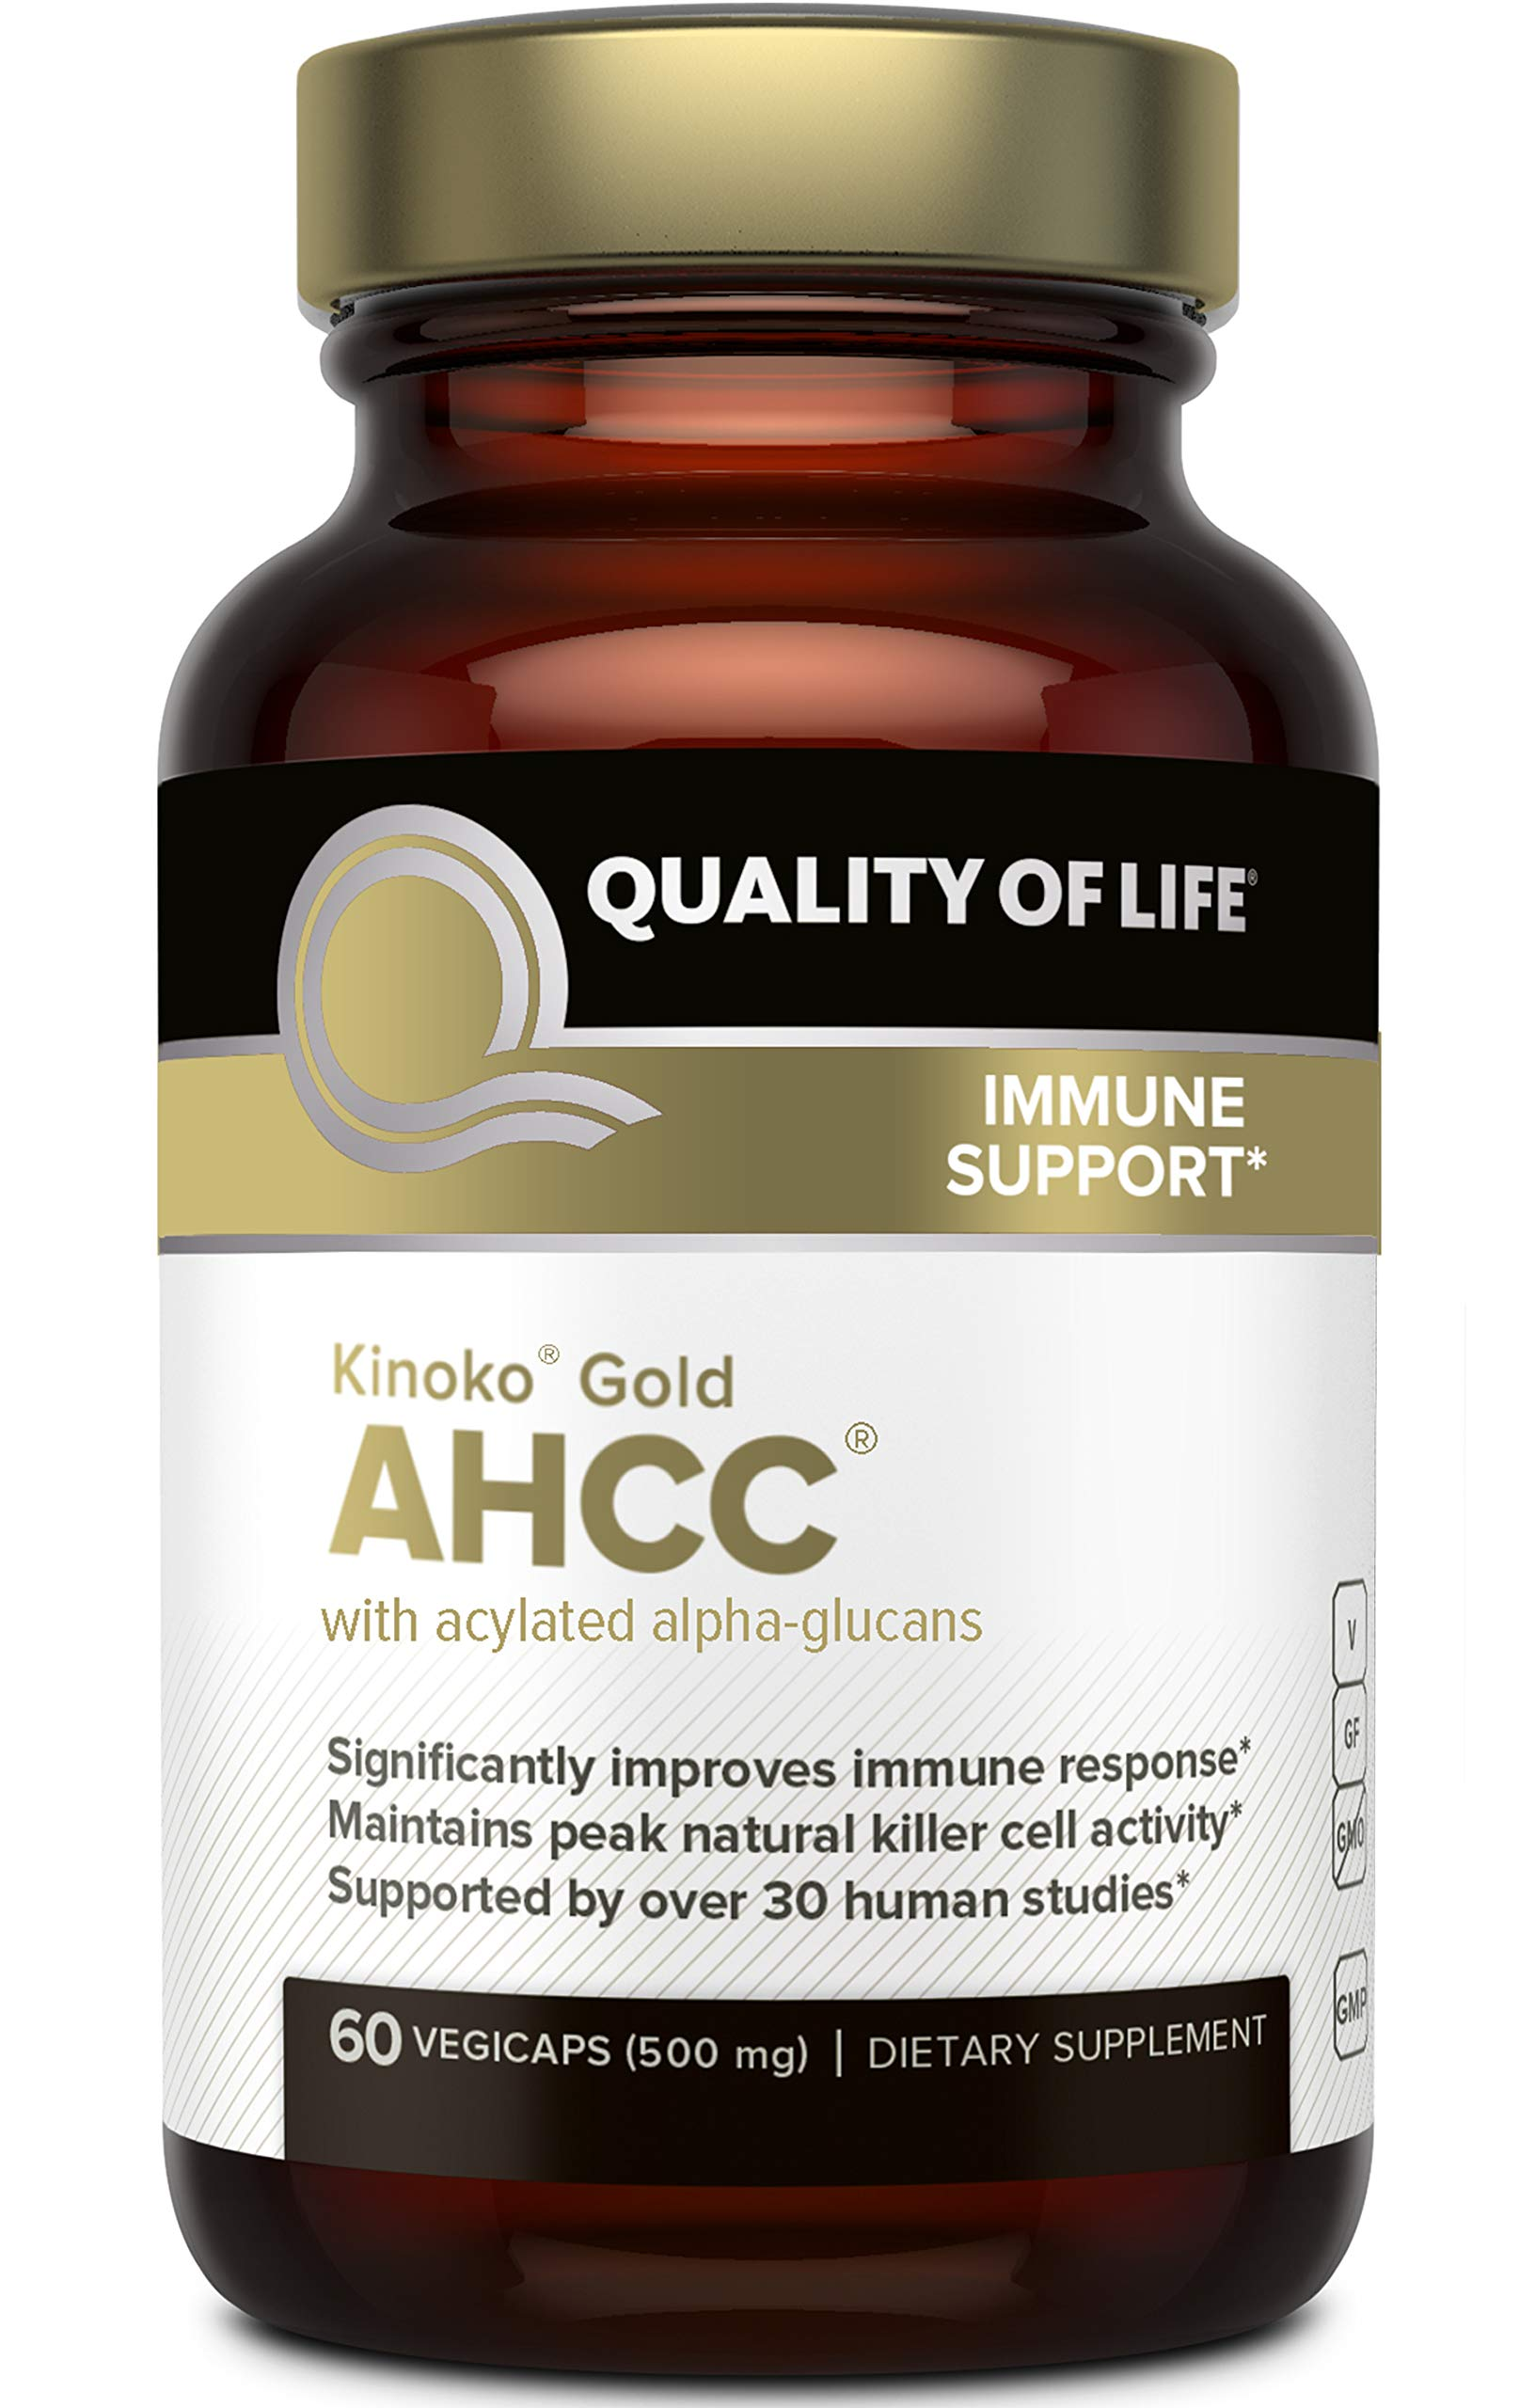 Premium Kinoko Gold AHCC Supplement-500mg of AHCC per Capsule-Supports Immune Health, Liver Function, Maintains Natural Killer Cell Activity & Enhances Cytokine Production-60 Veggie Capsules by Quality of Life